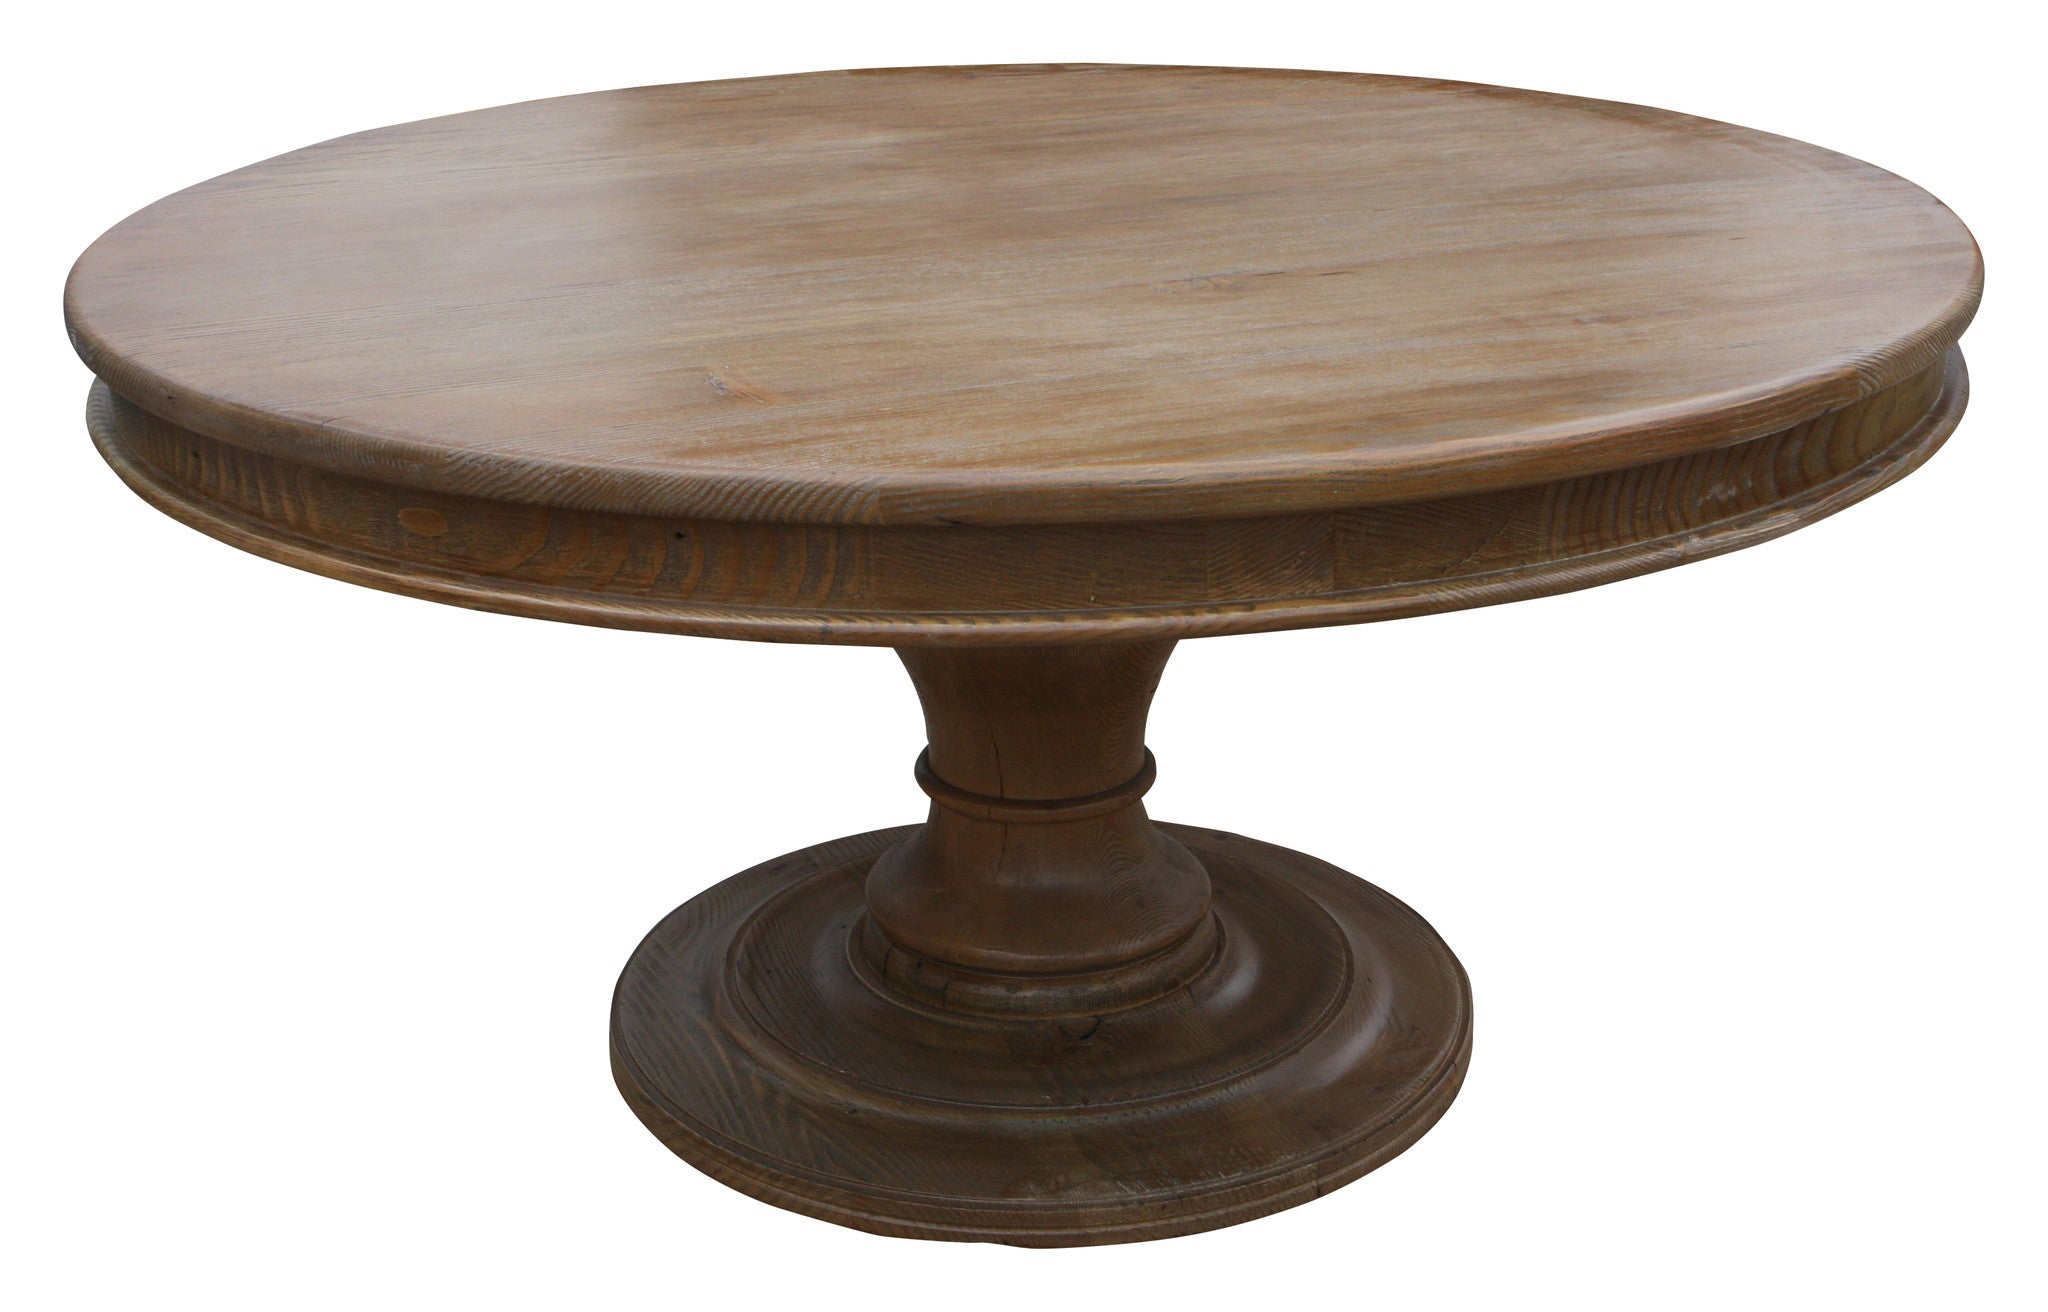 Assassins creed review even michael fassbender cant make this junk leap off the screen telegraph co uk - Custom Pedestal For Round Table Ecustomfinishes Westport Round Reclaimed Wood Extension Pedestal Table Mortise